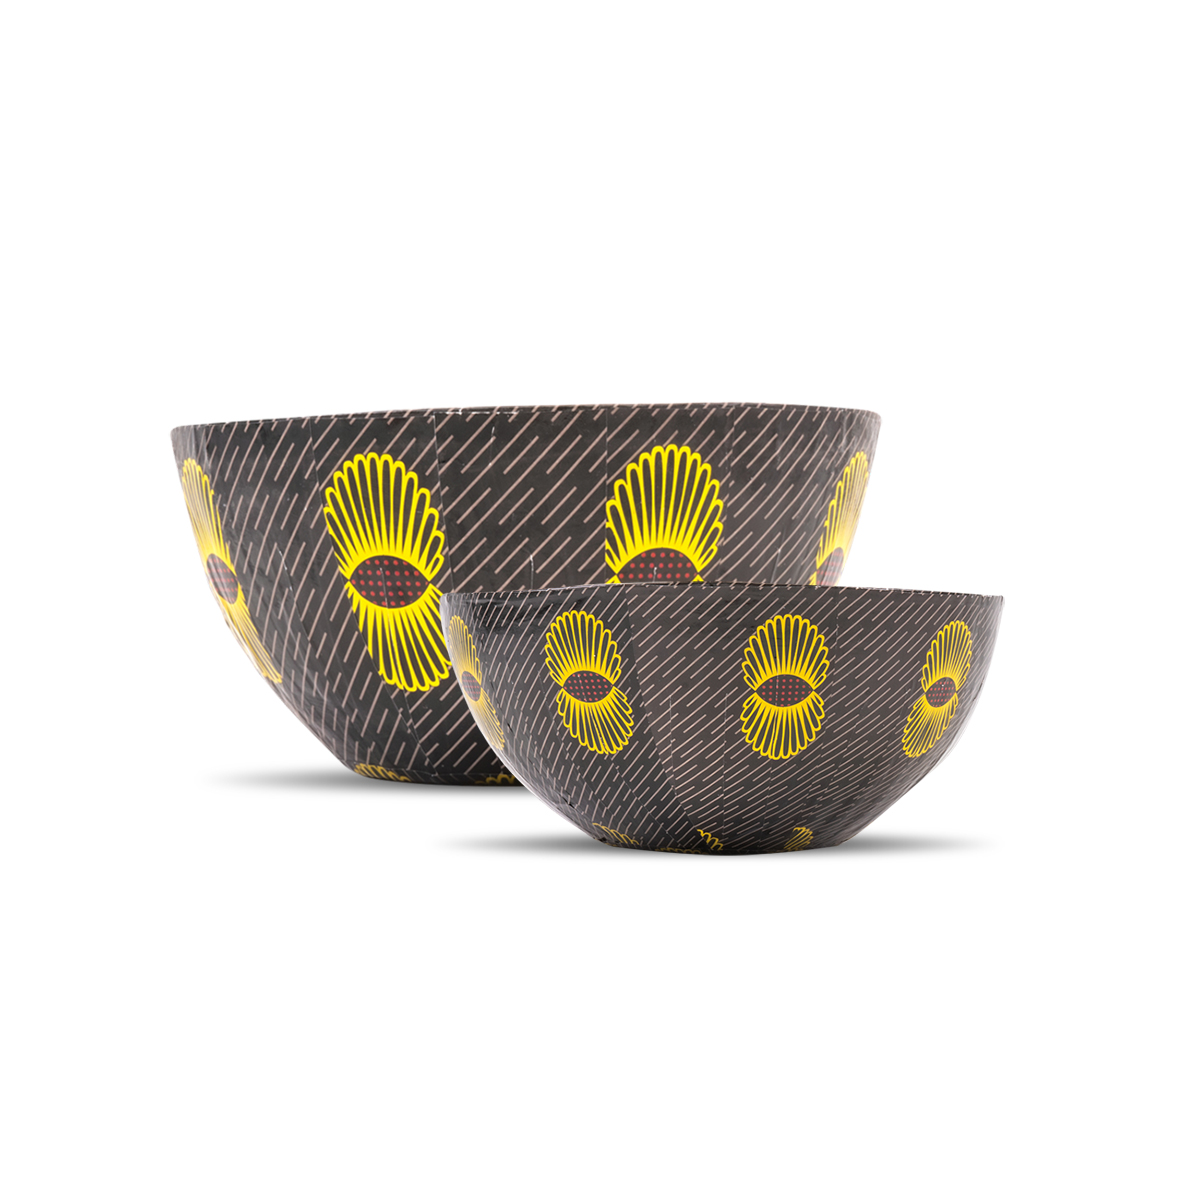 Wola Nani, South Africa: Nesting Paper Maché Bowls – Pineapples